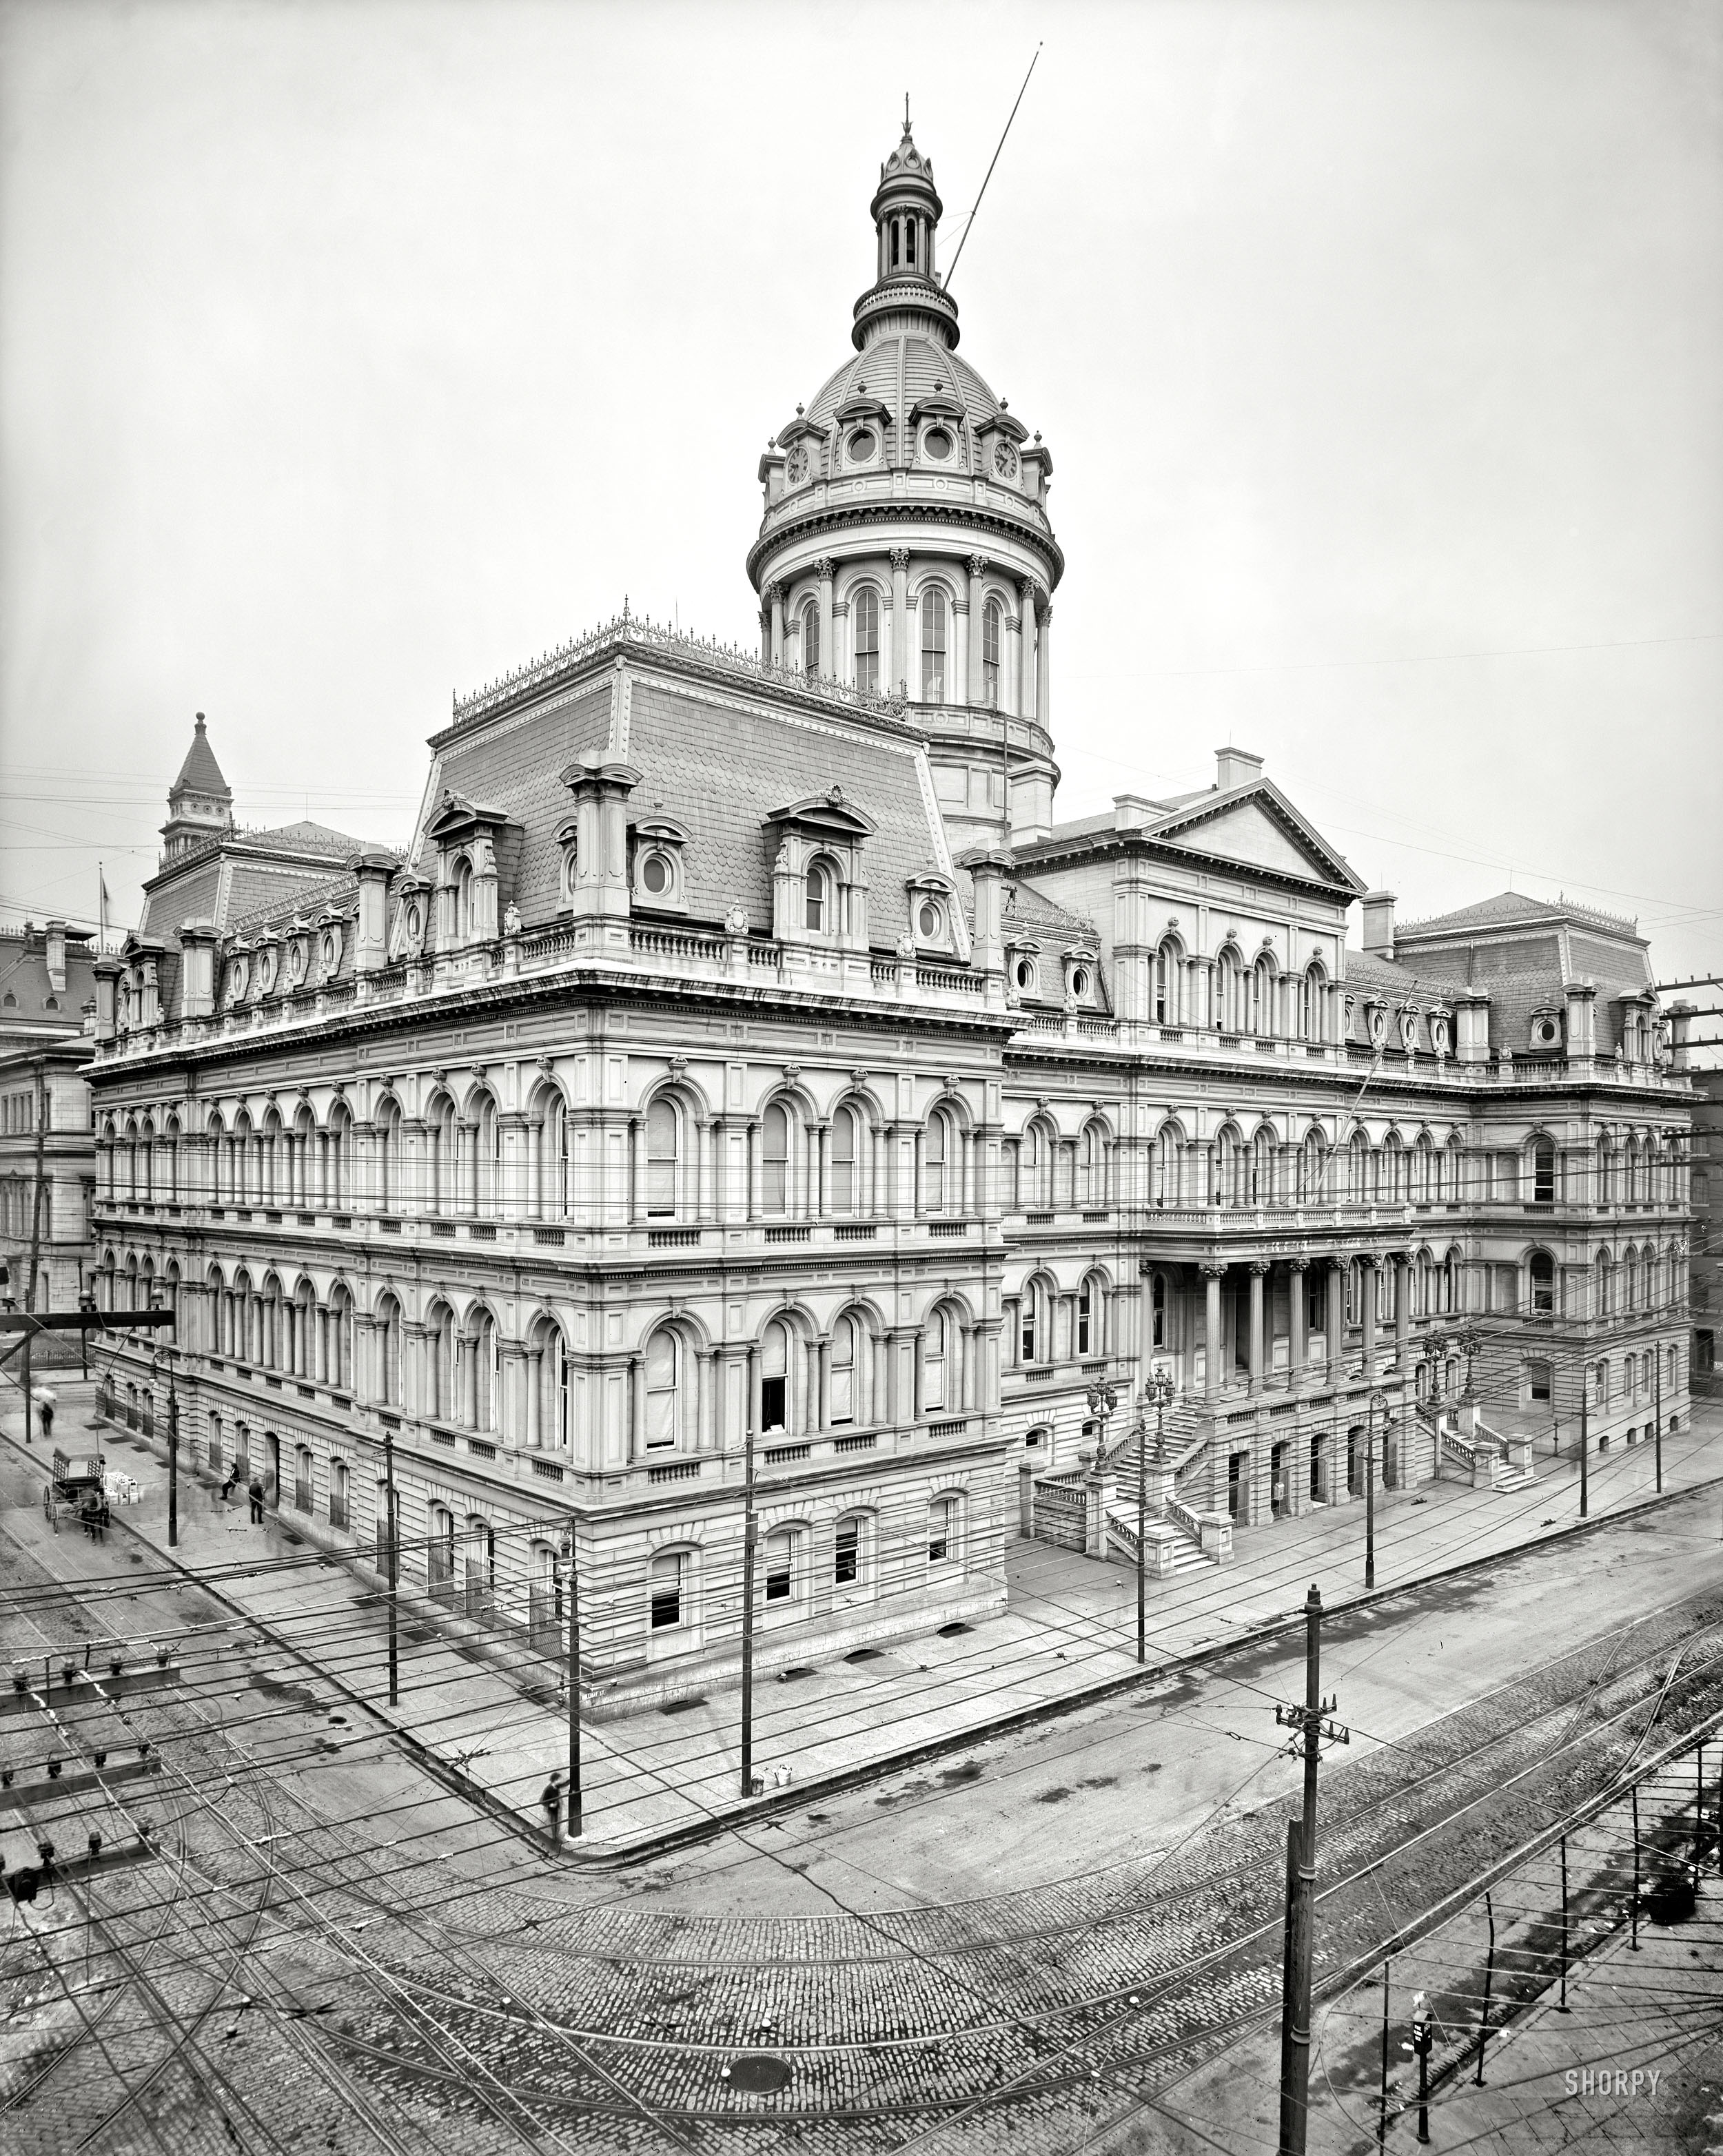 Great Photo of Baltimore City Hall in 1900